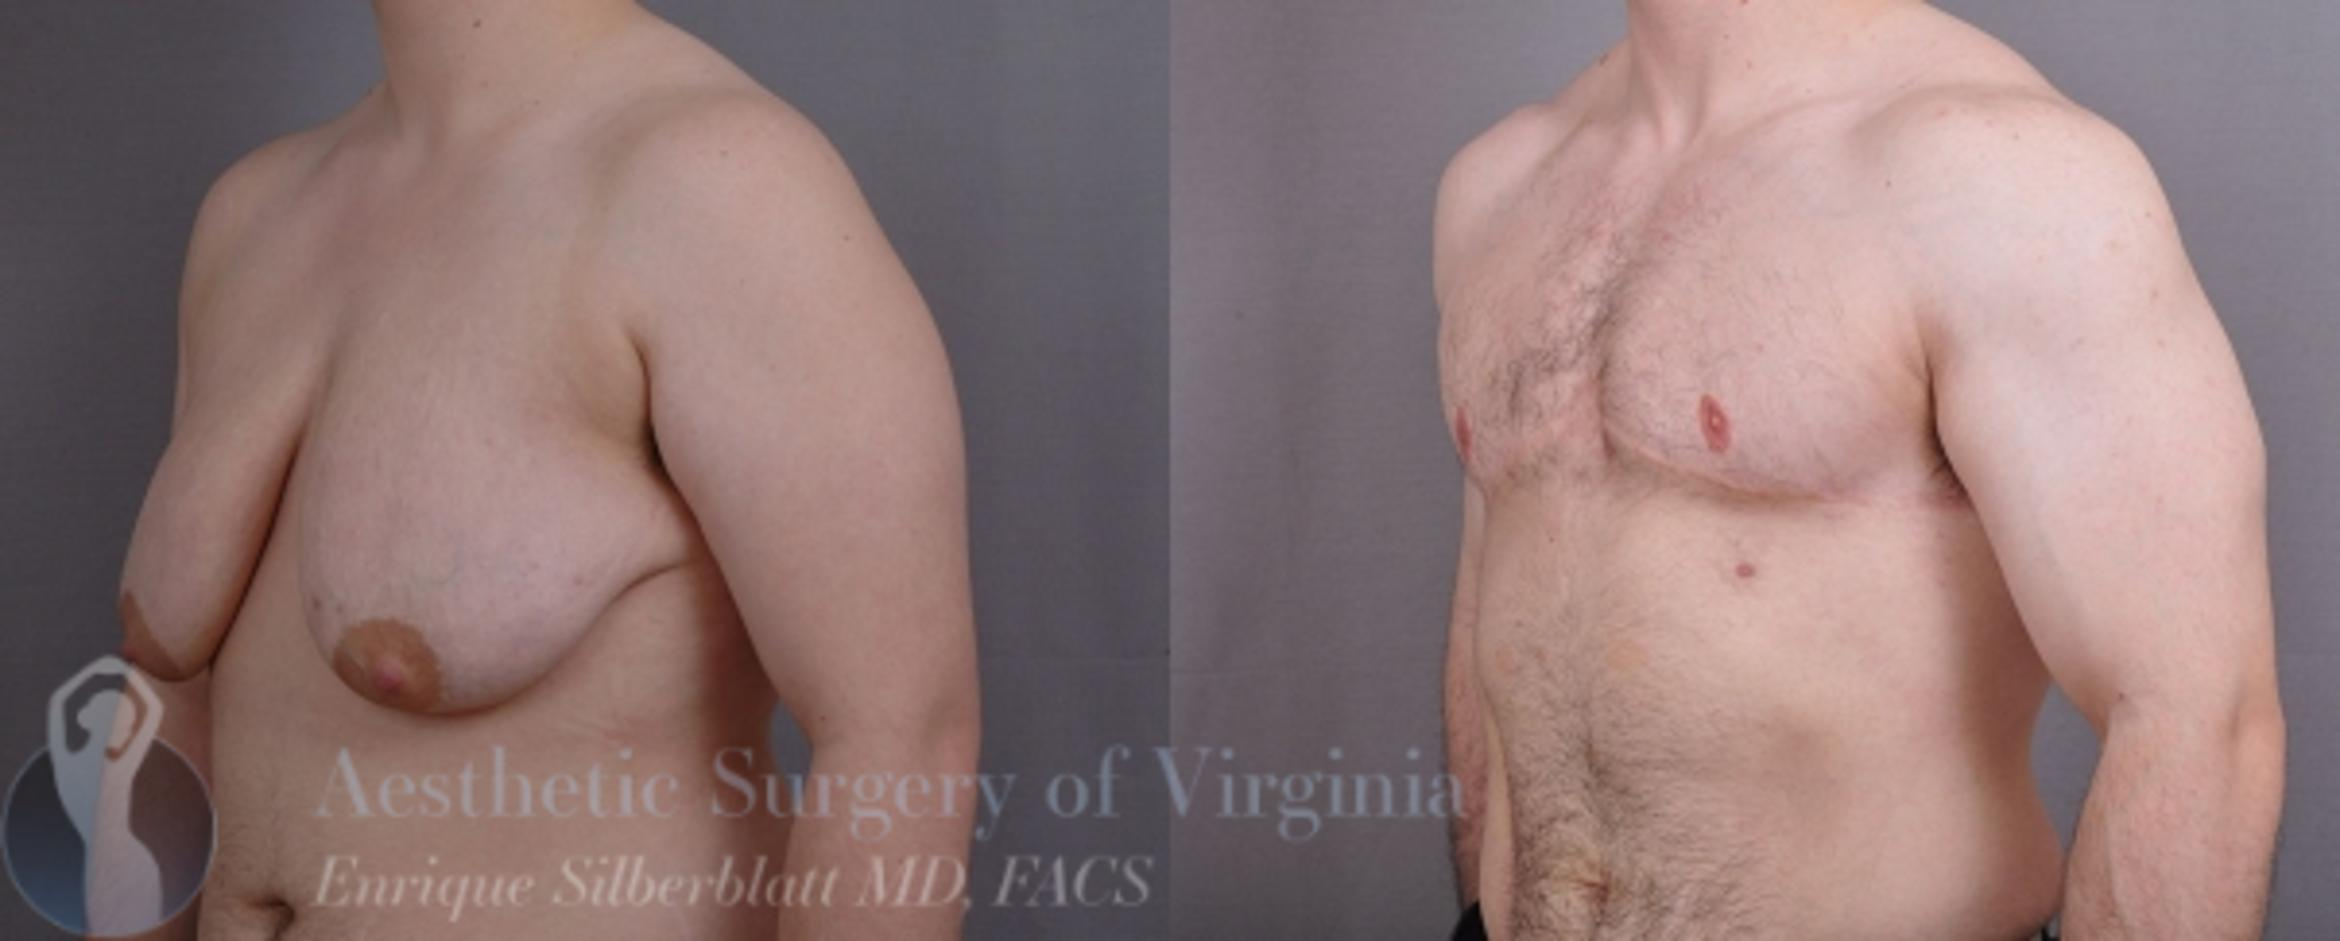 Female to Male Breast Surgery Case 57 Before & After View #2 | Roanoke, VA | Aesthetic Surgery of Virginia: Enrique Silberblatt, MD